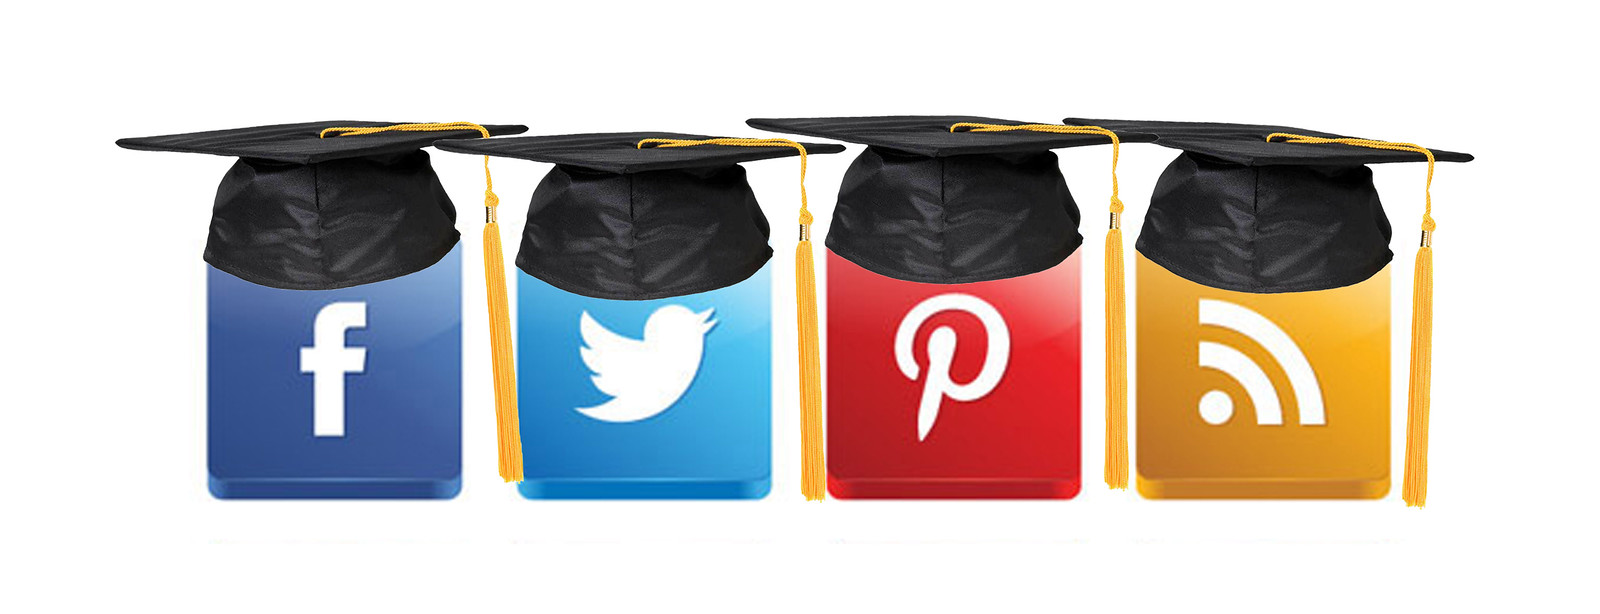 social media marketing classes